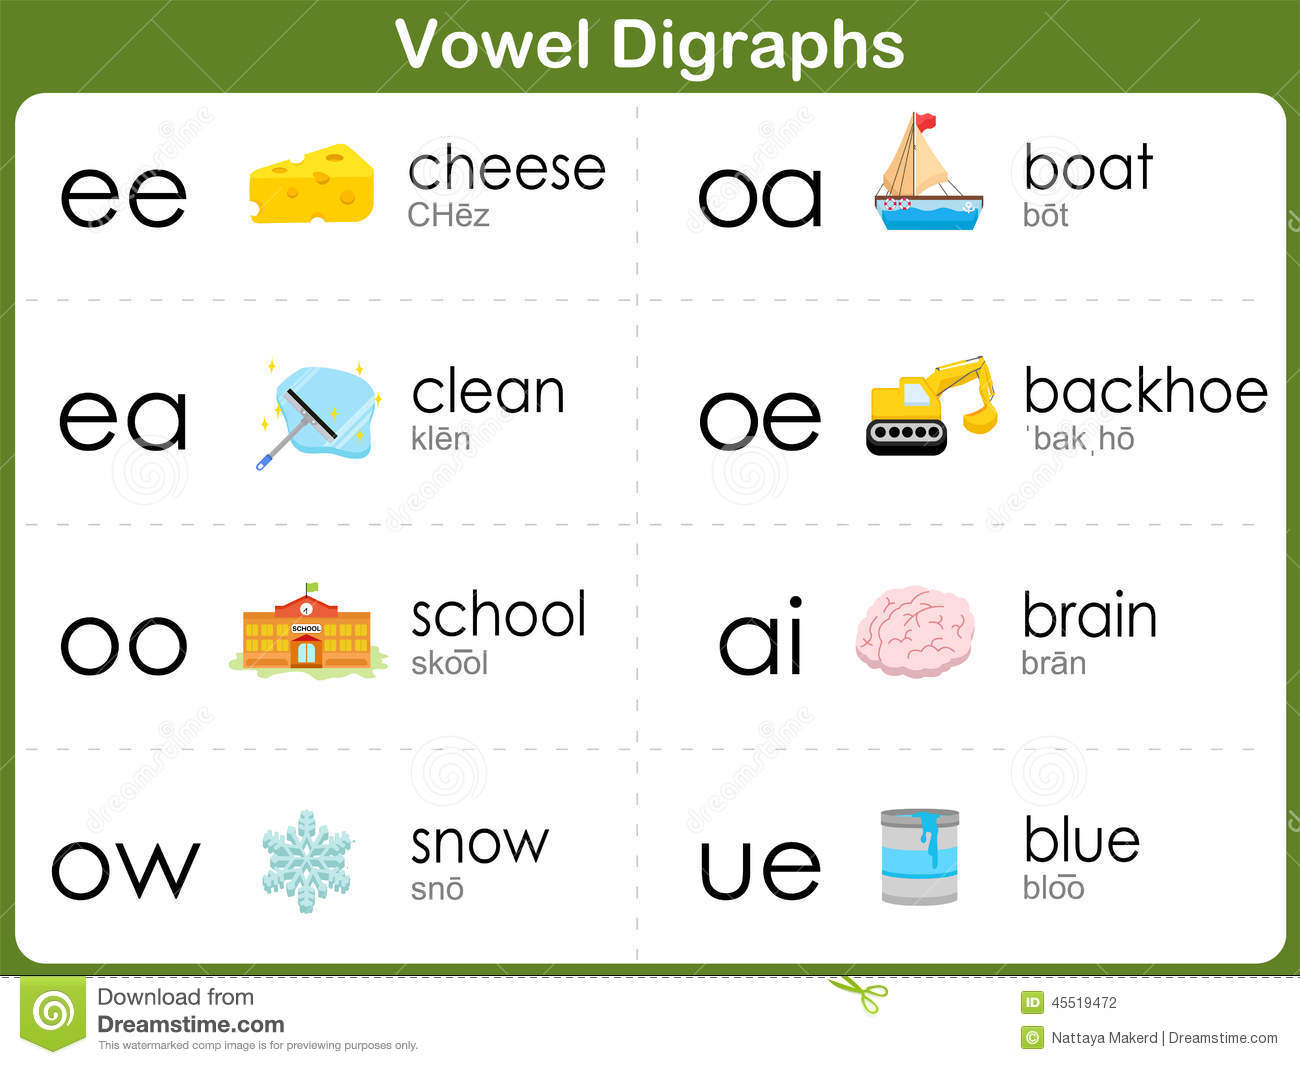 Printables Vowel Digraph Worksheets Messygracebook